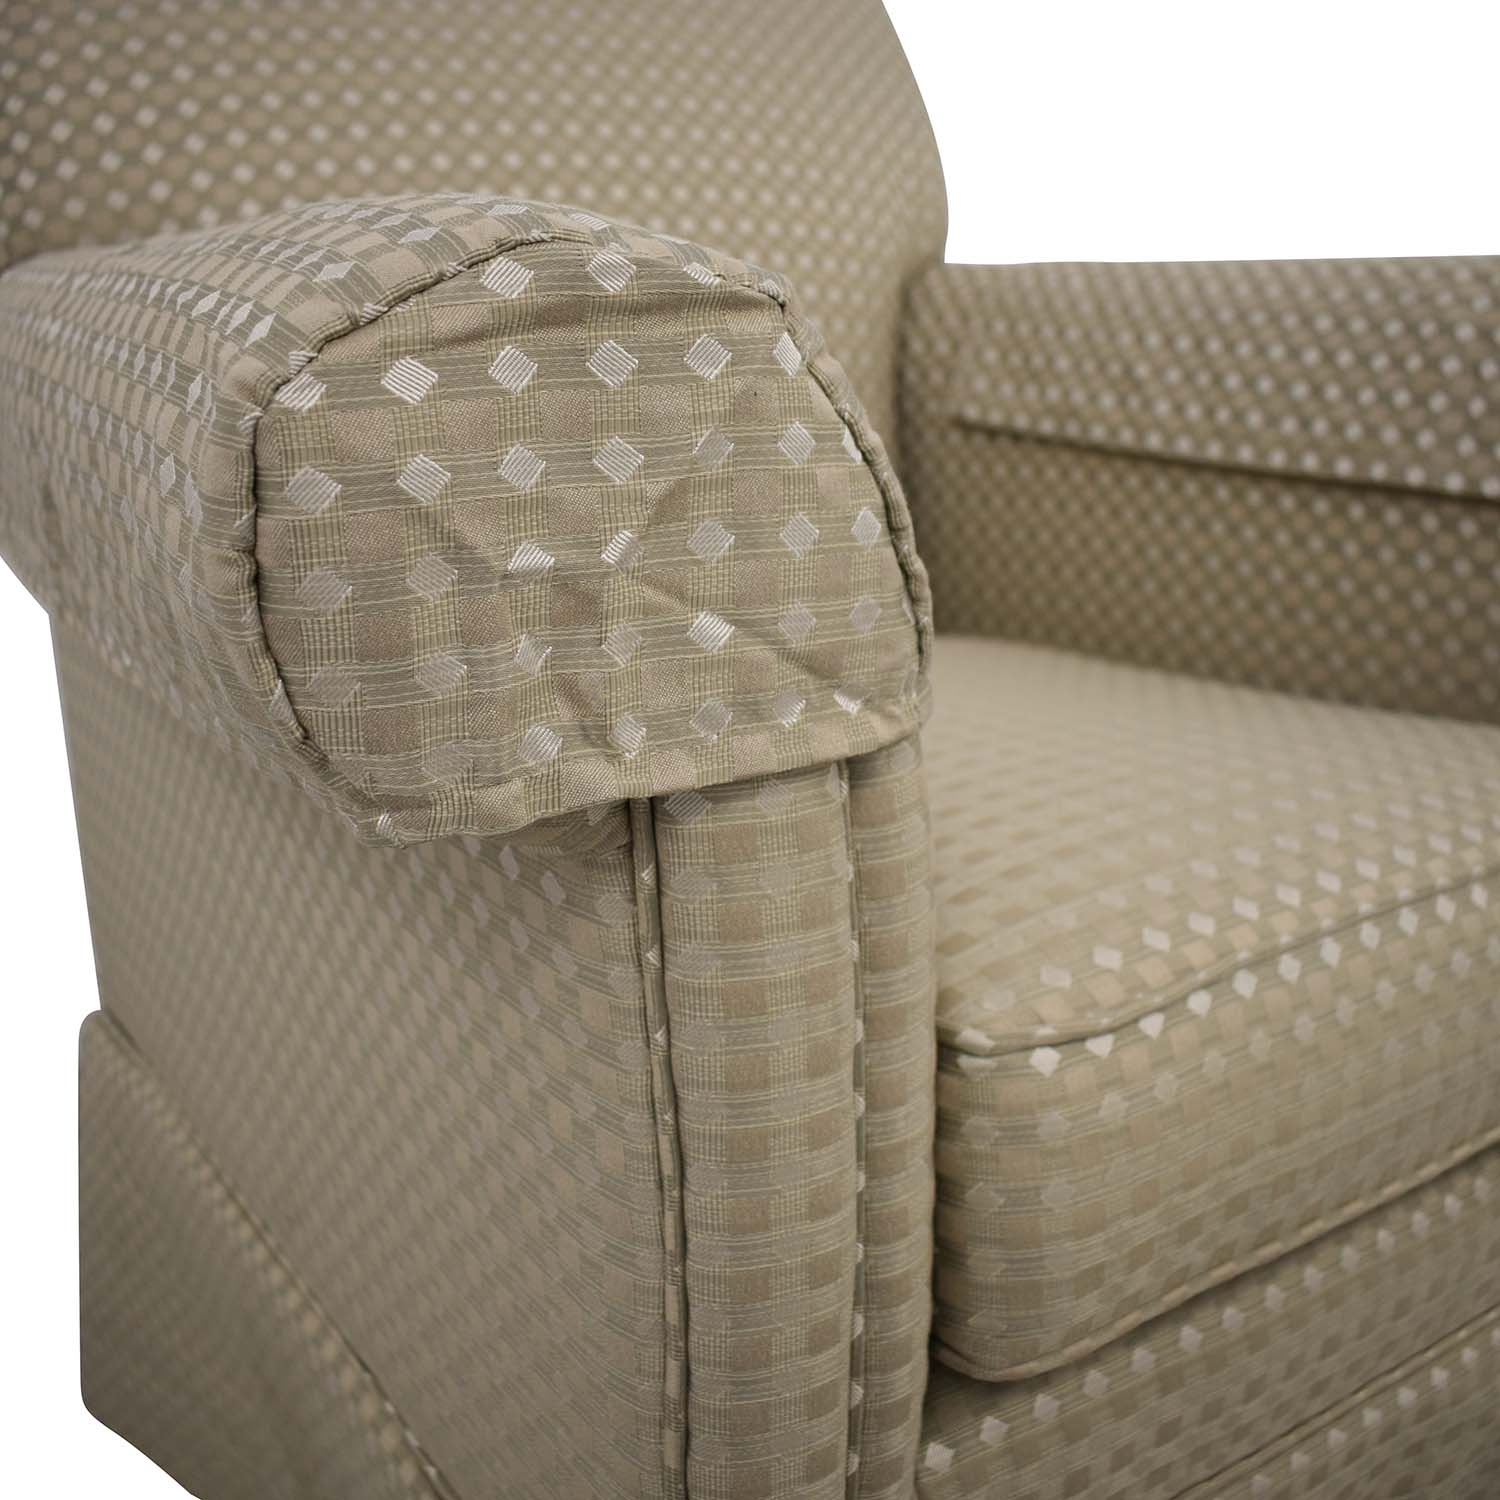 Ethan Allen Slipcovered Chair sale